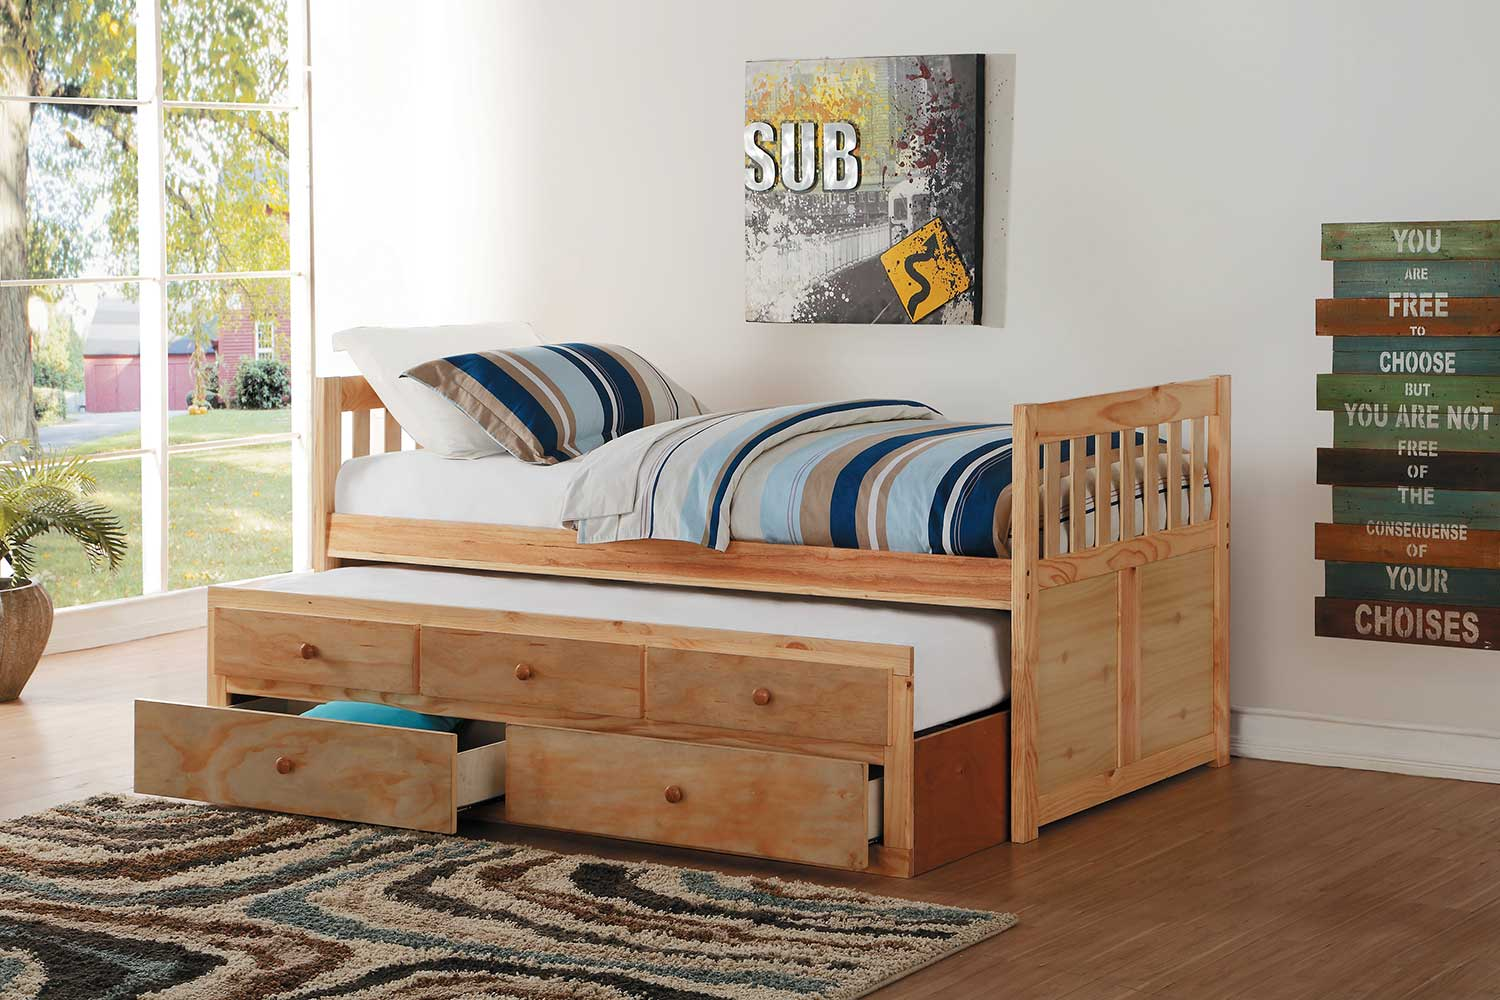 Homelegance Bartly Natural Pine Twin/Twin Bed with Trundle and 2